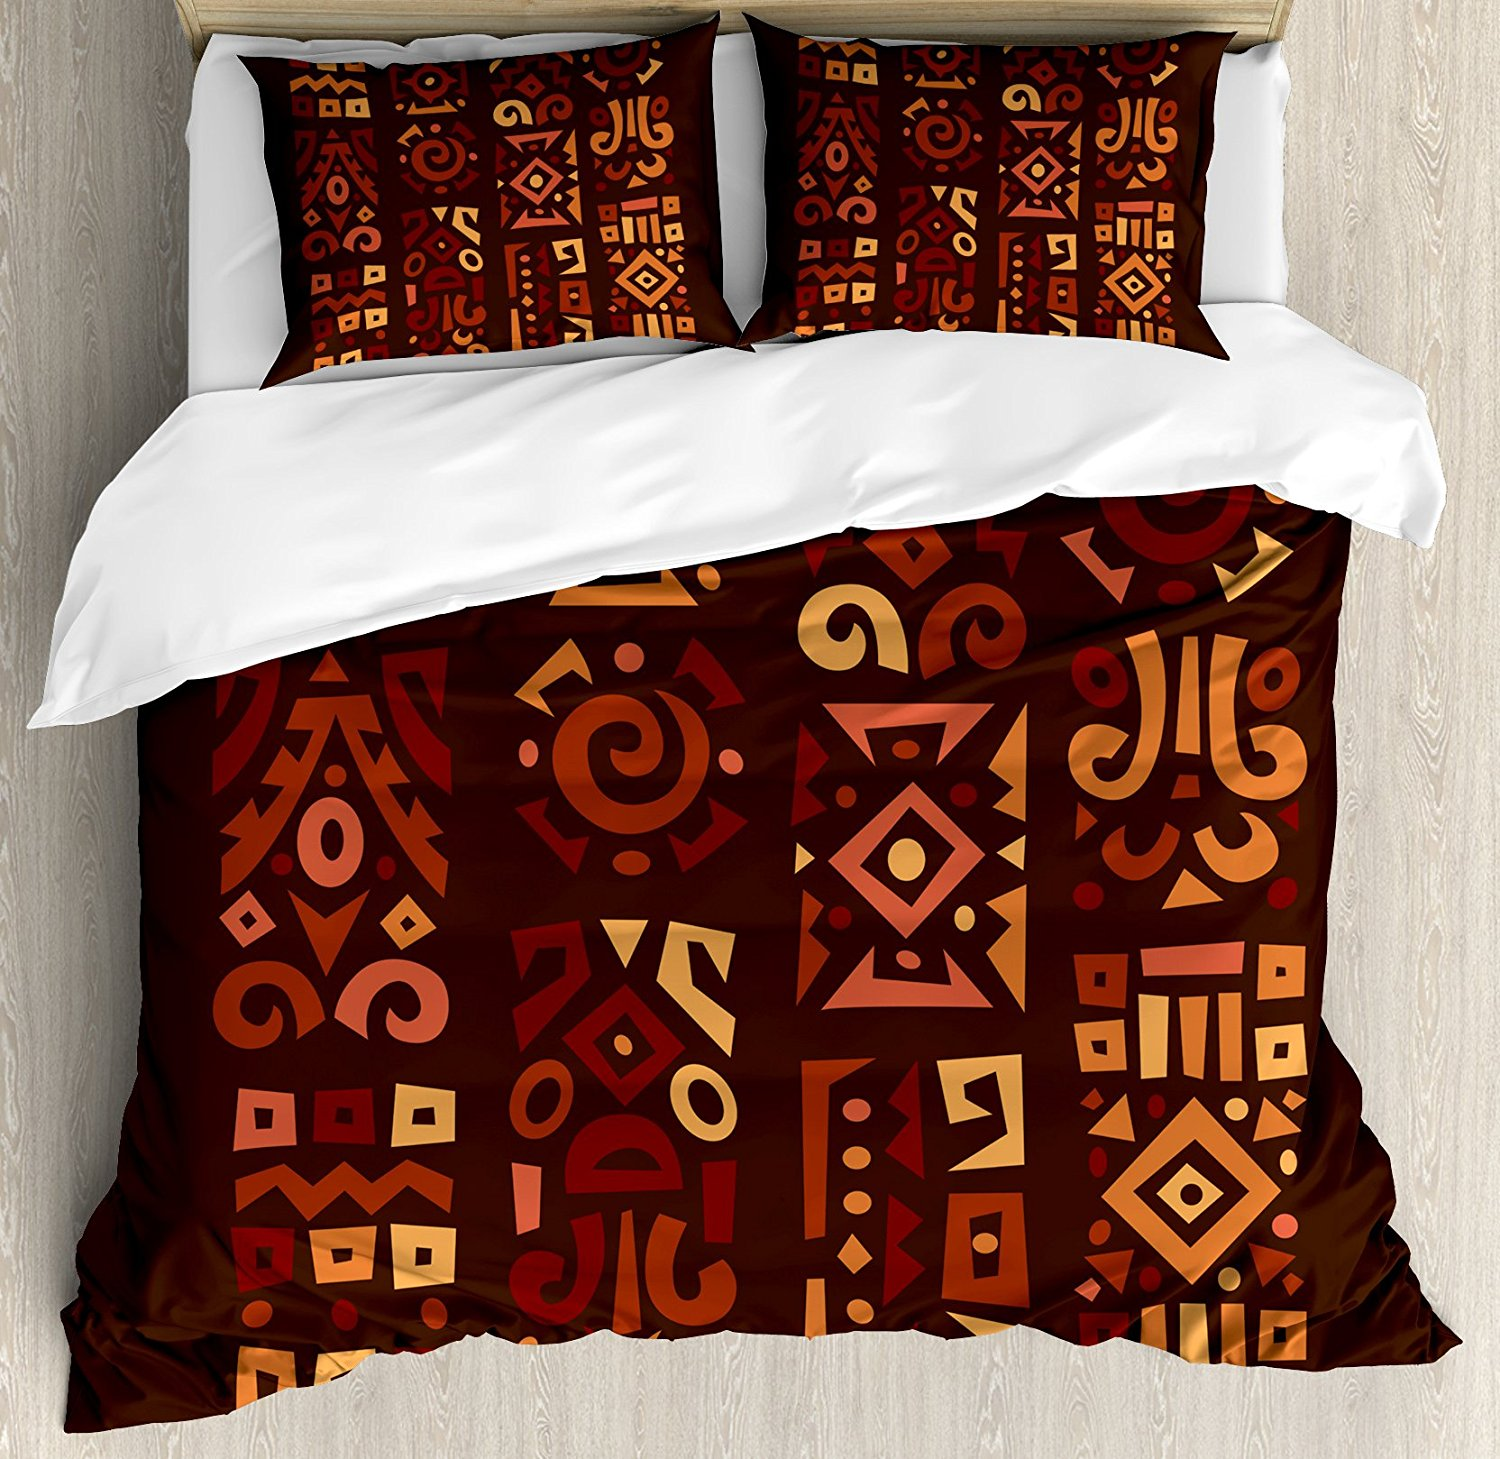 Earth Tones Duvet Cover Set Queen Size Doodle Style Graphic African Figures in Four Vertical Borders Ethnic Accents Multicolor ...